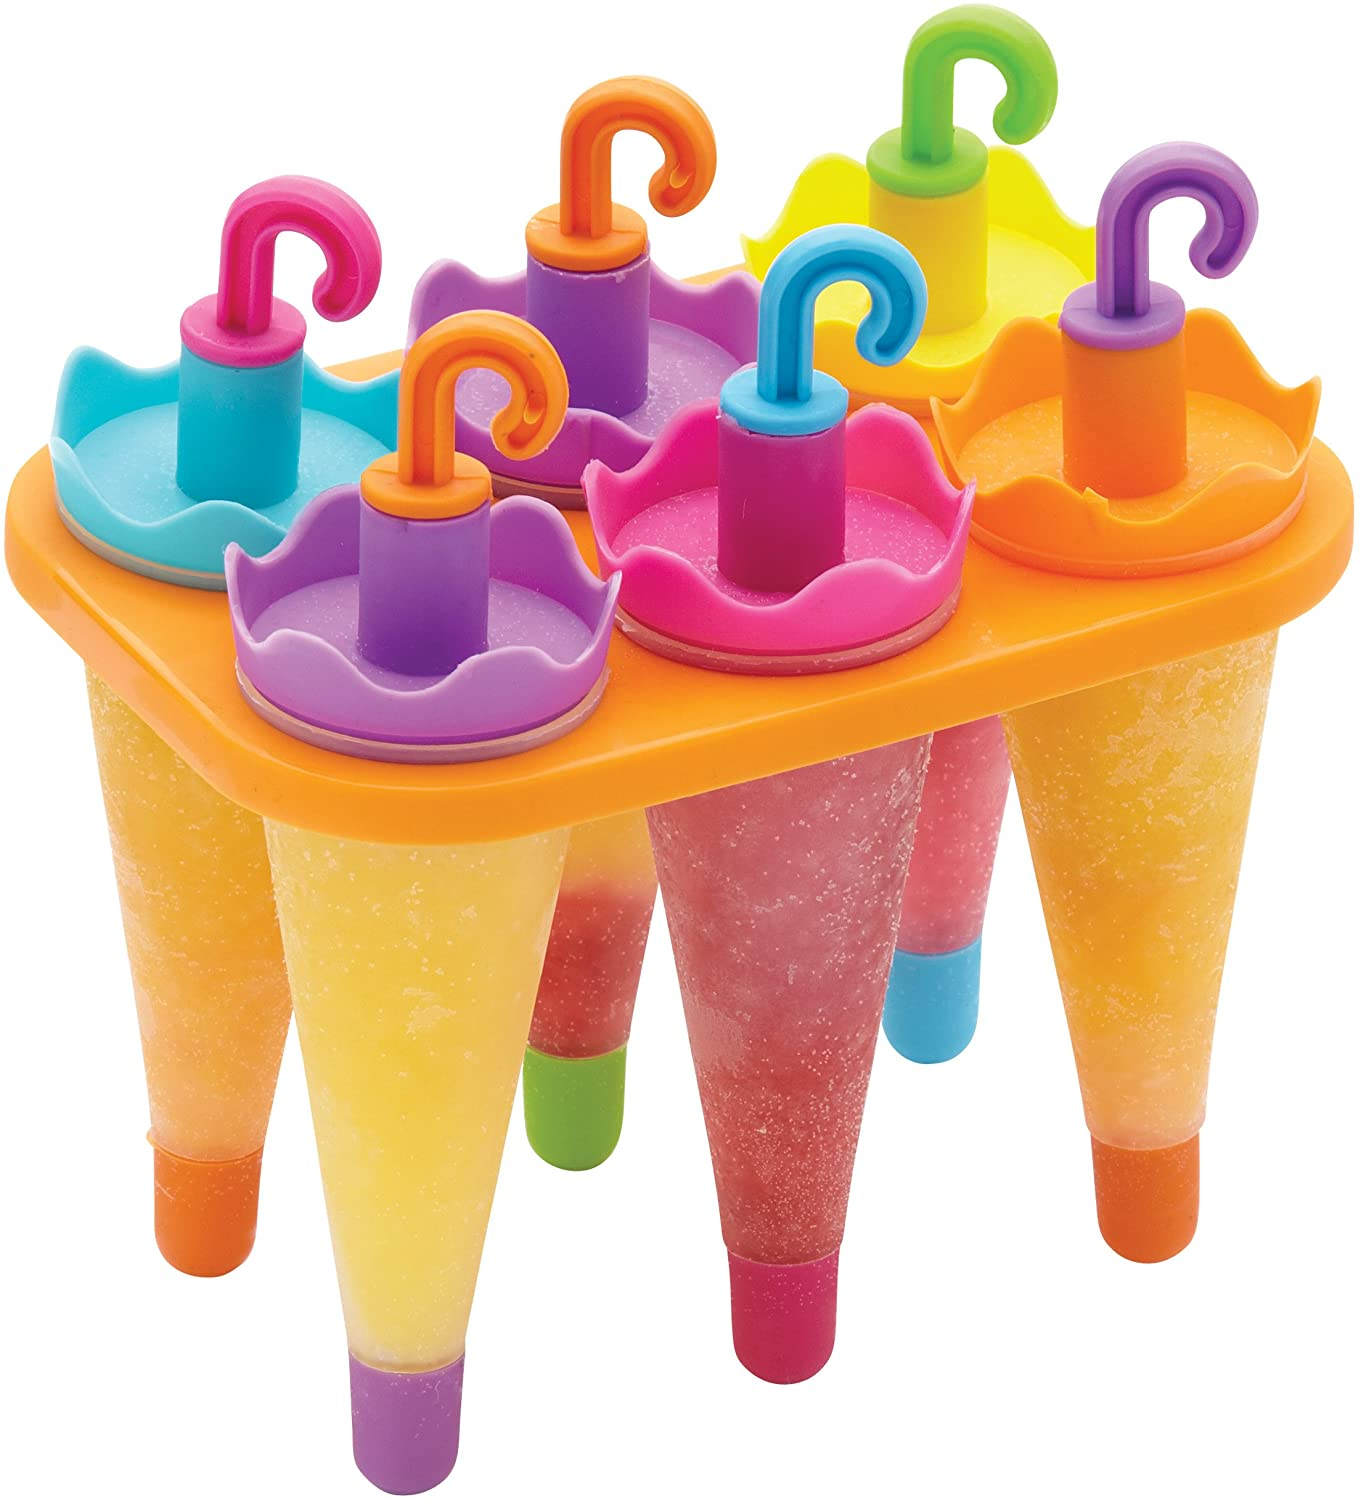 Set Of 4 Umbrella Ice Lolly Mould Colourful Kids Ice Lolly Maker Mould Lolly Pop